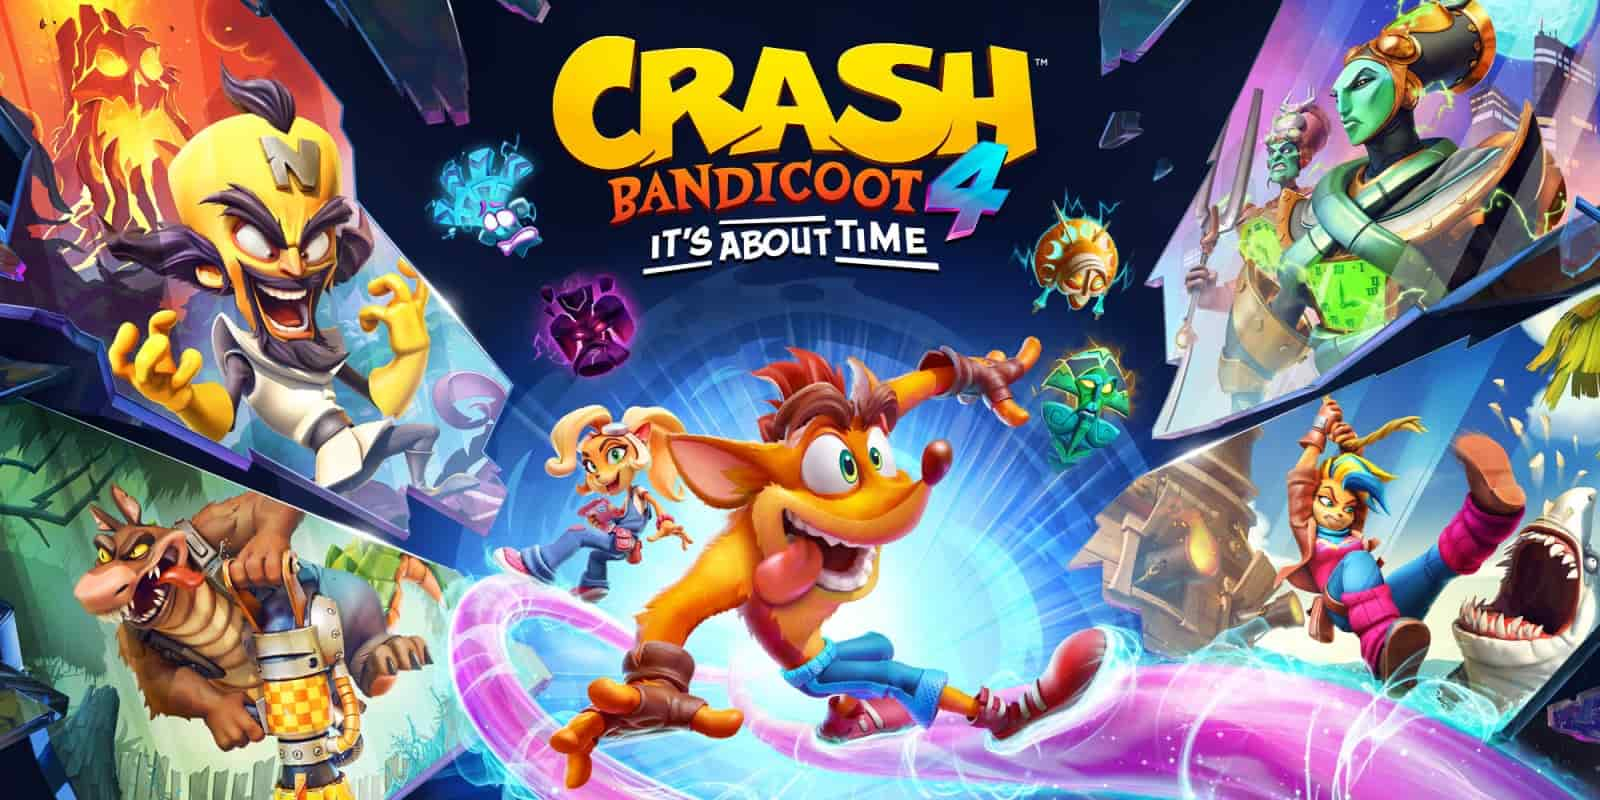 crash-bandicoot-4-it-s-about-time fre download game